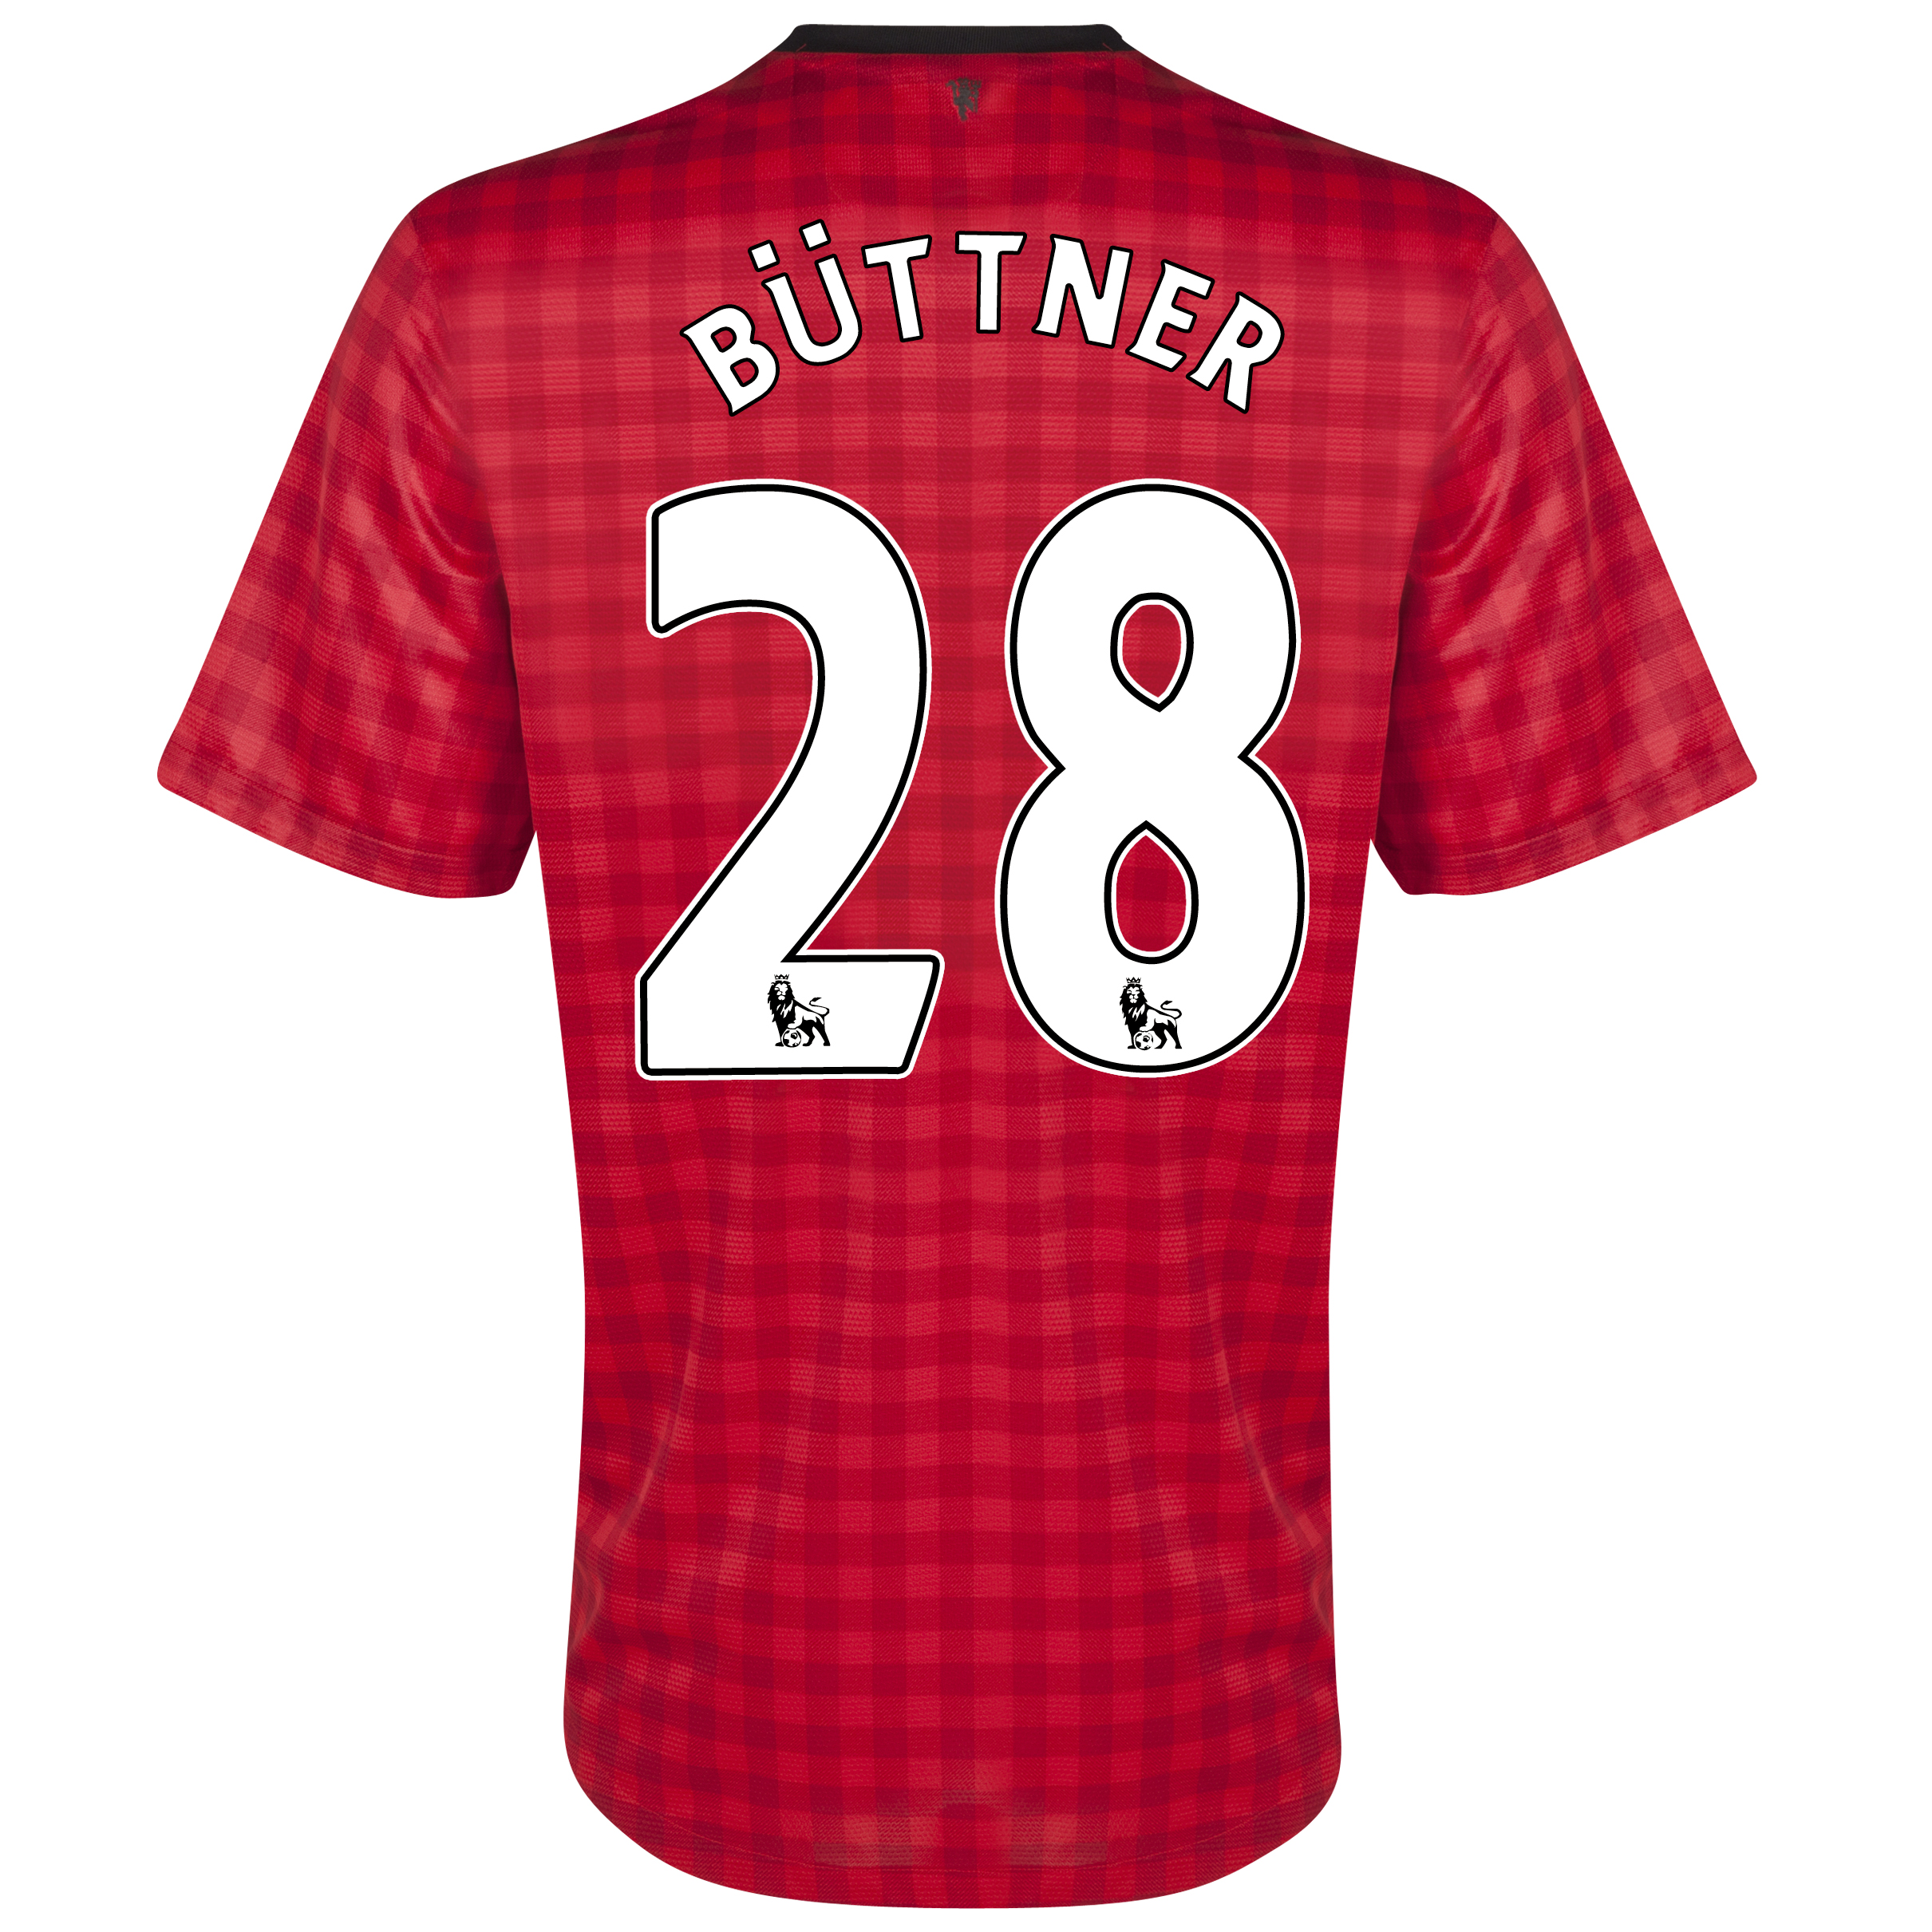 Manchester United Home Shirt 2012/13  - Youths with Büttner 28 printing